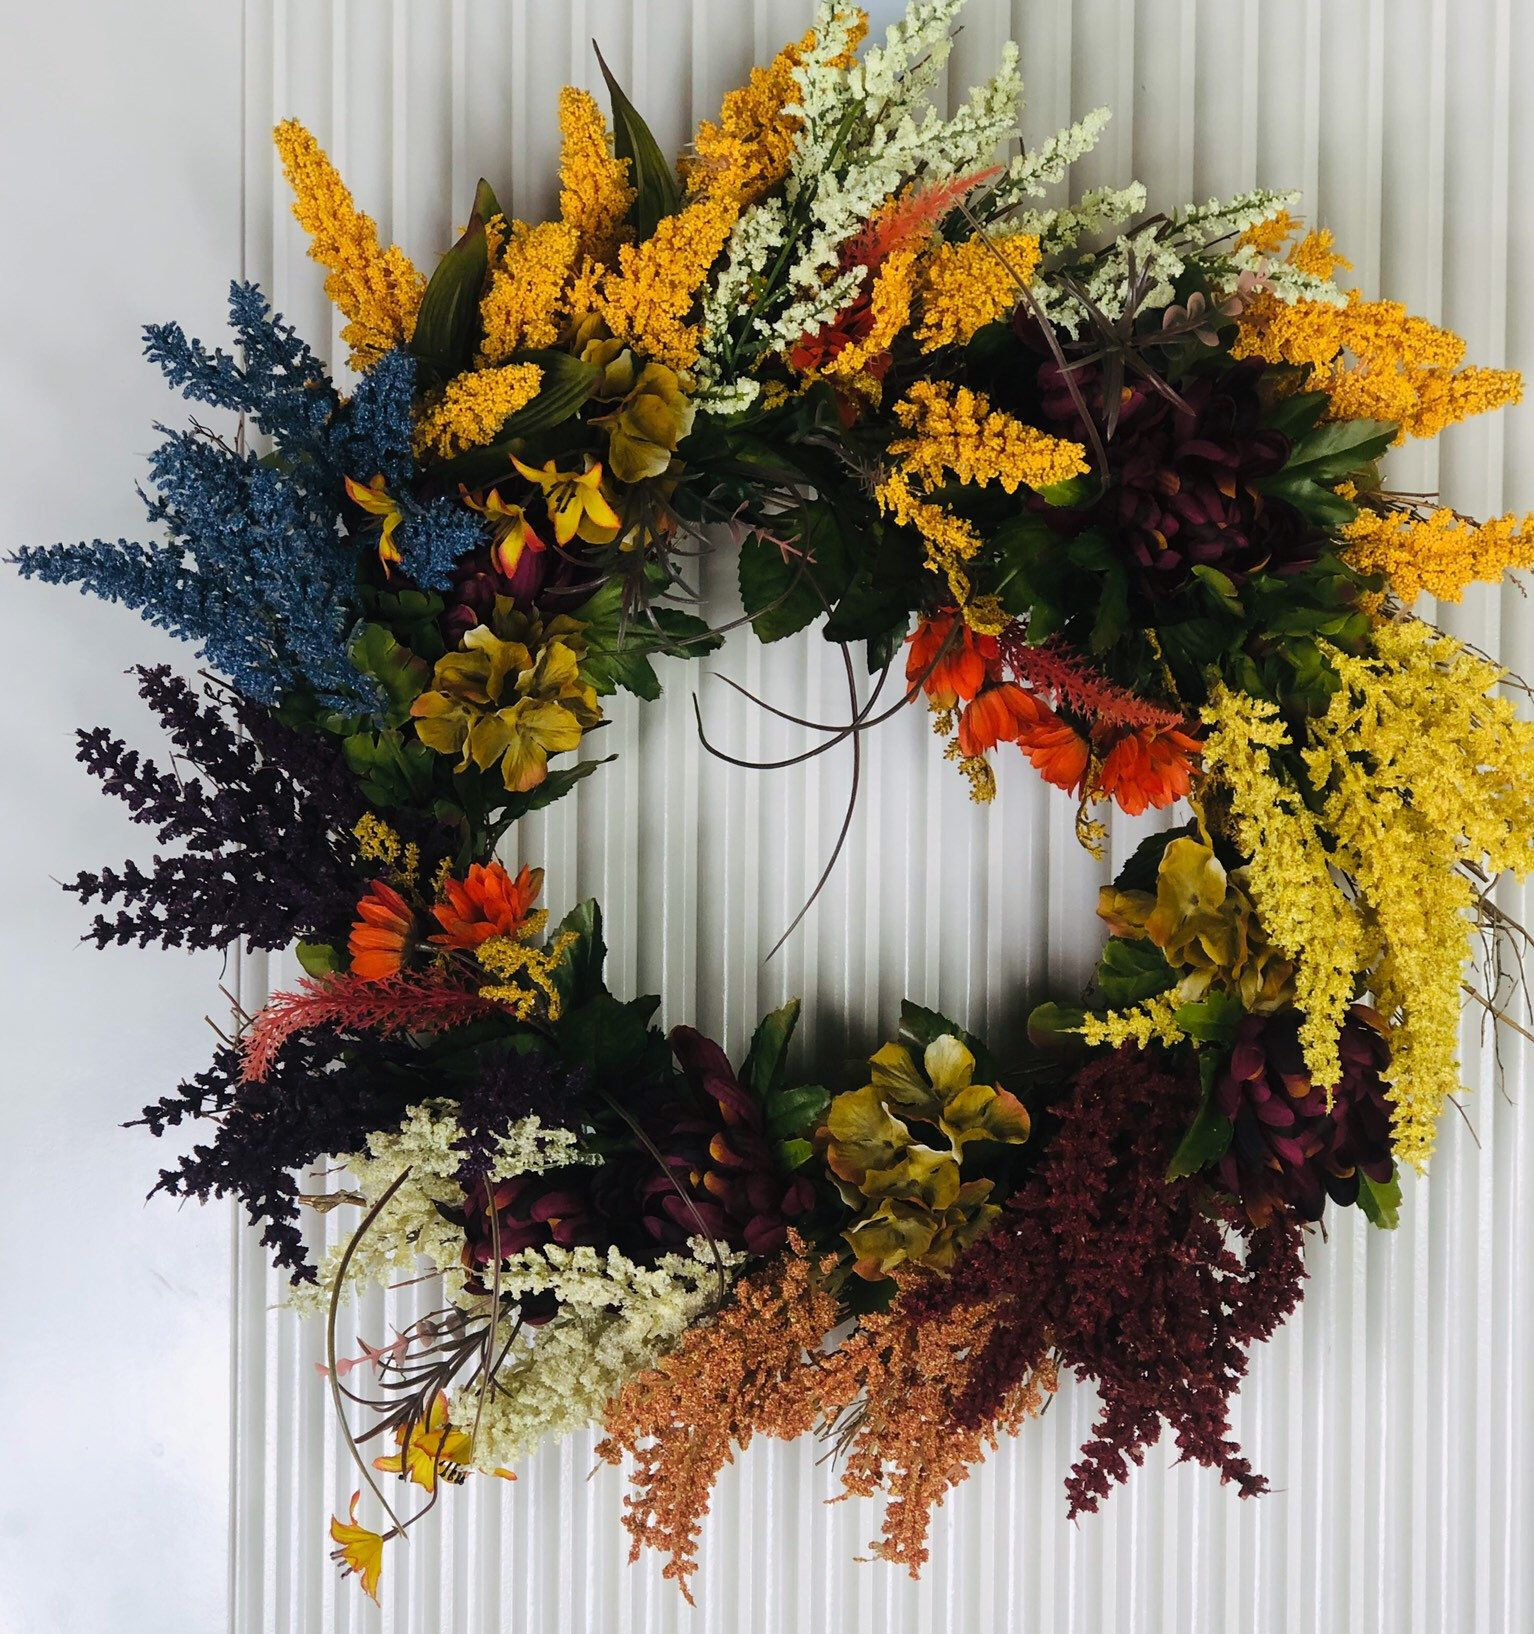 Fall Heather Wreath, Farmhouse Wreath for Front Door, Heather Wreath for Front Door, Fall Decor, Winter Heather Wreath, Thanksgiving Wreath images